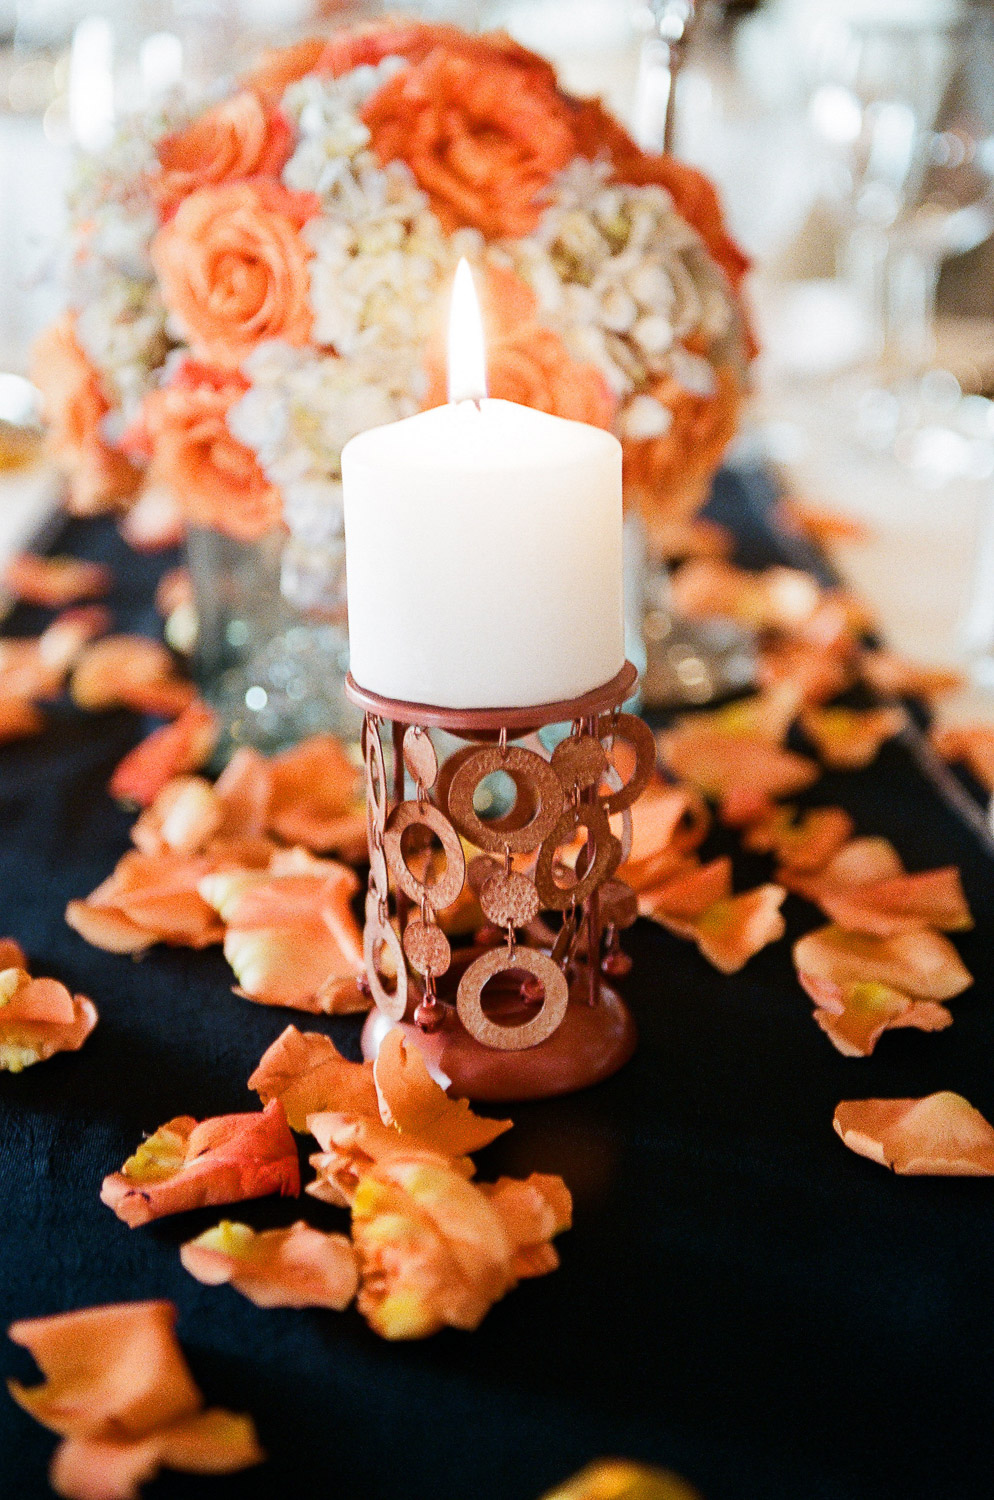 india wedding decor candle and flower petals by wendy g photography